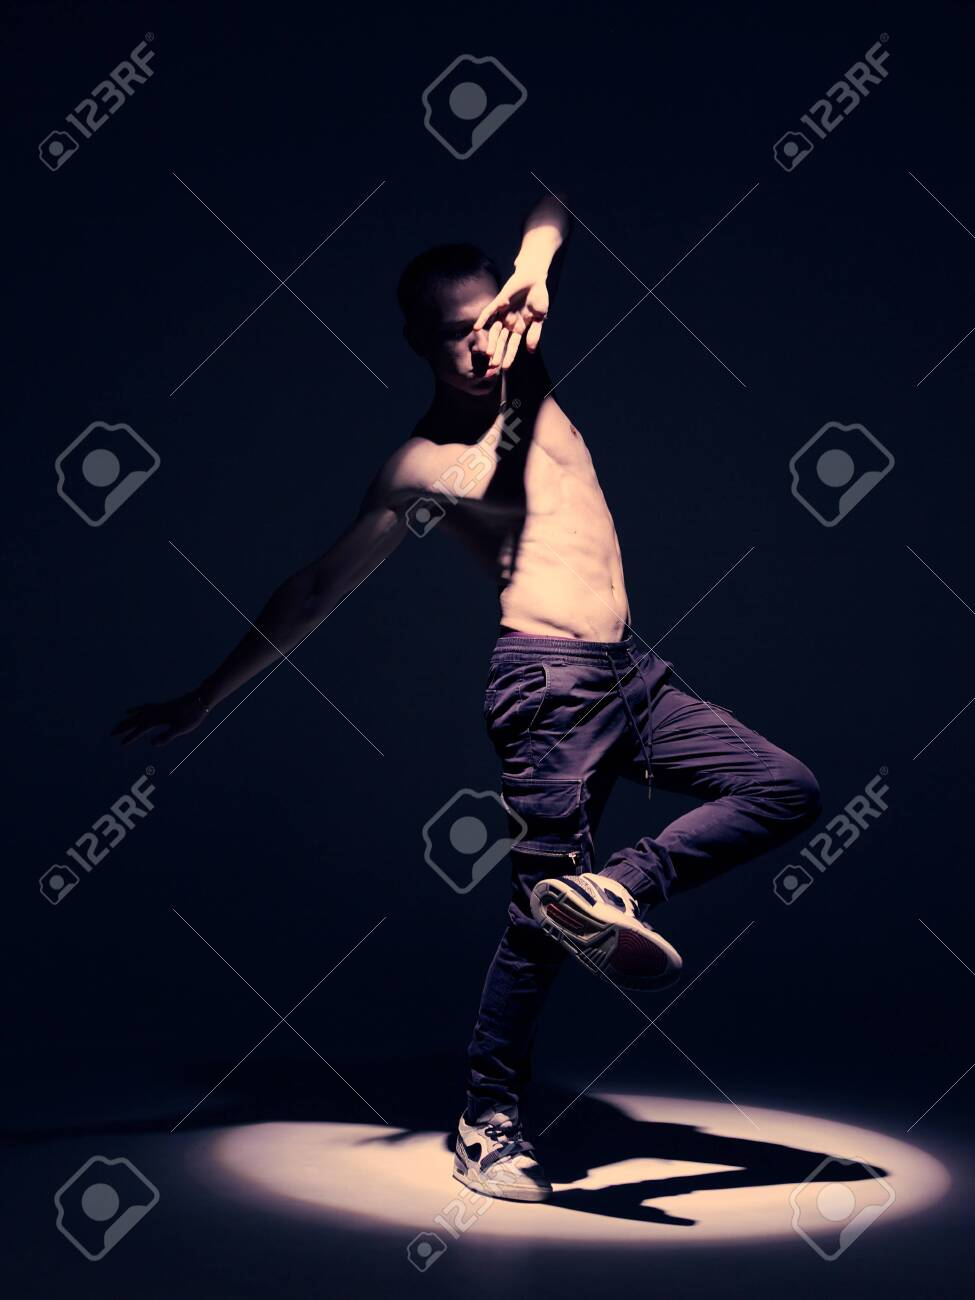 Cool Guy Dancer With Naked Torso Dancing In Studio In Spotlight Stock Photo Picture And Royalty Free Image Image 154083945